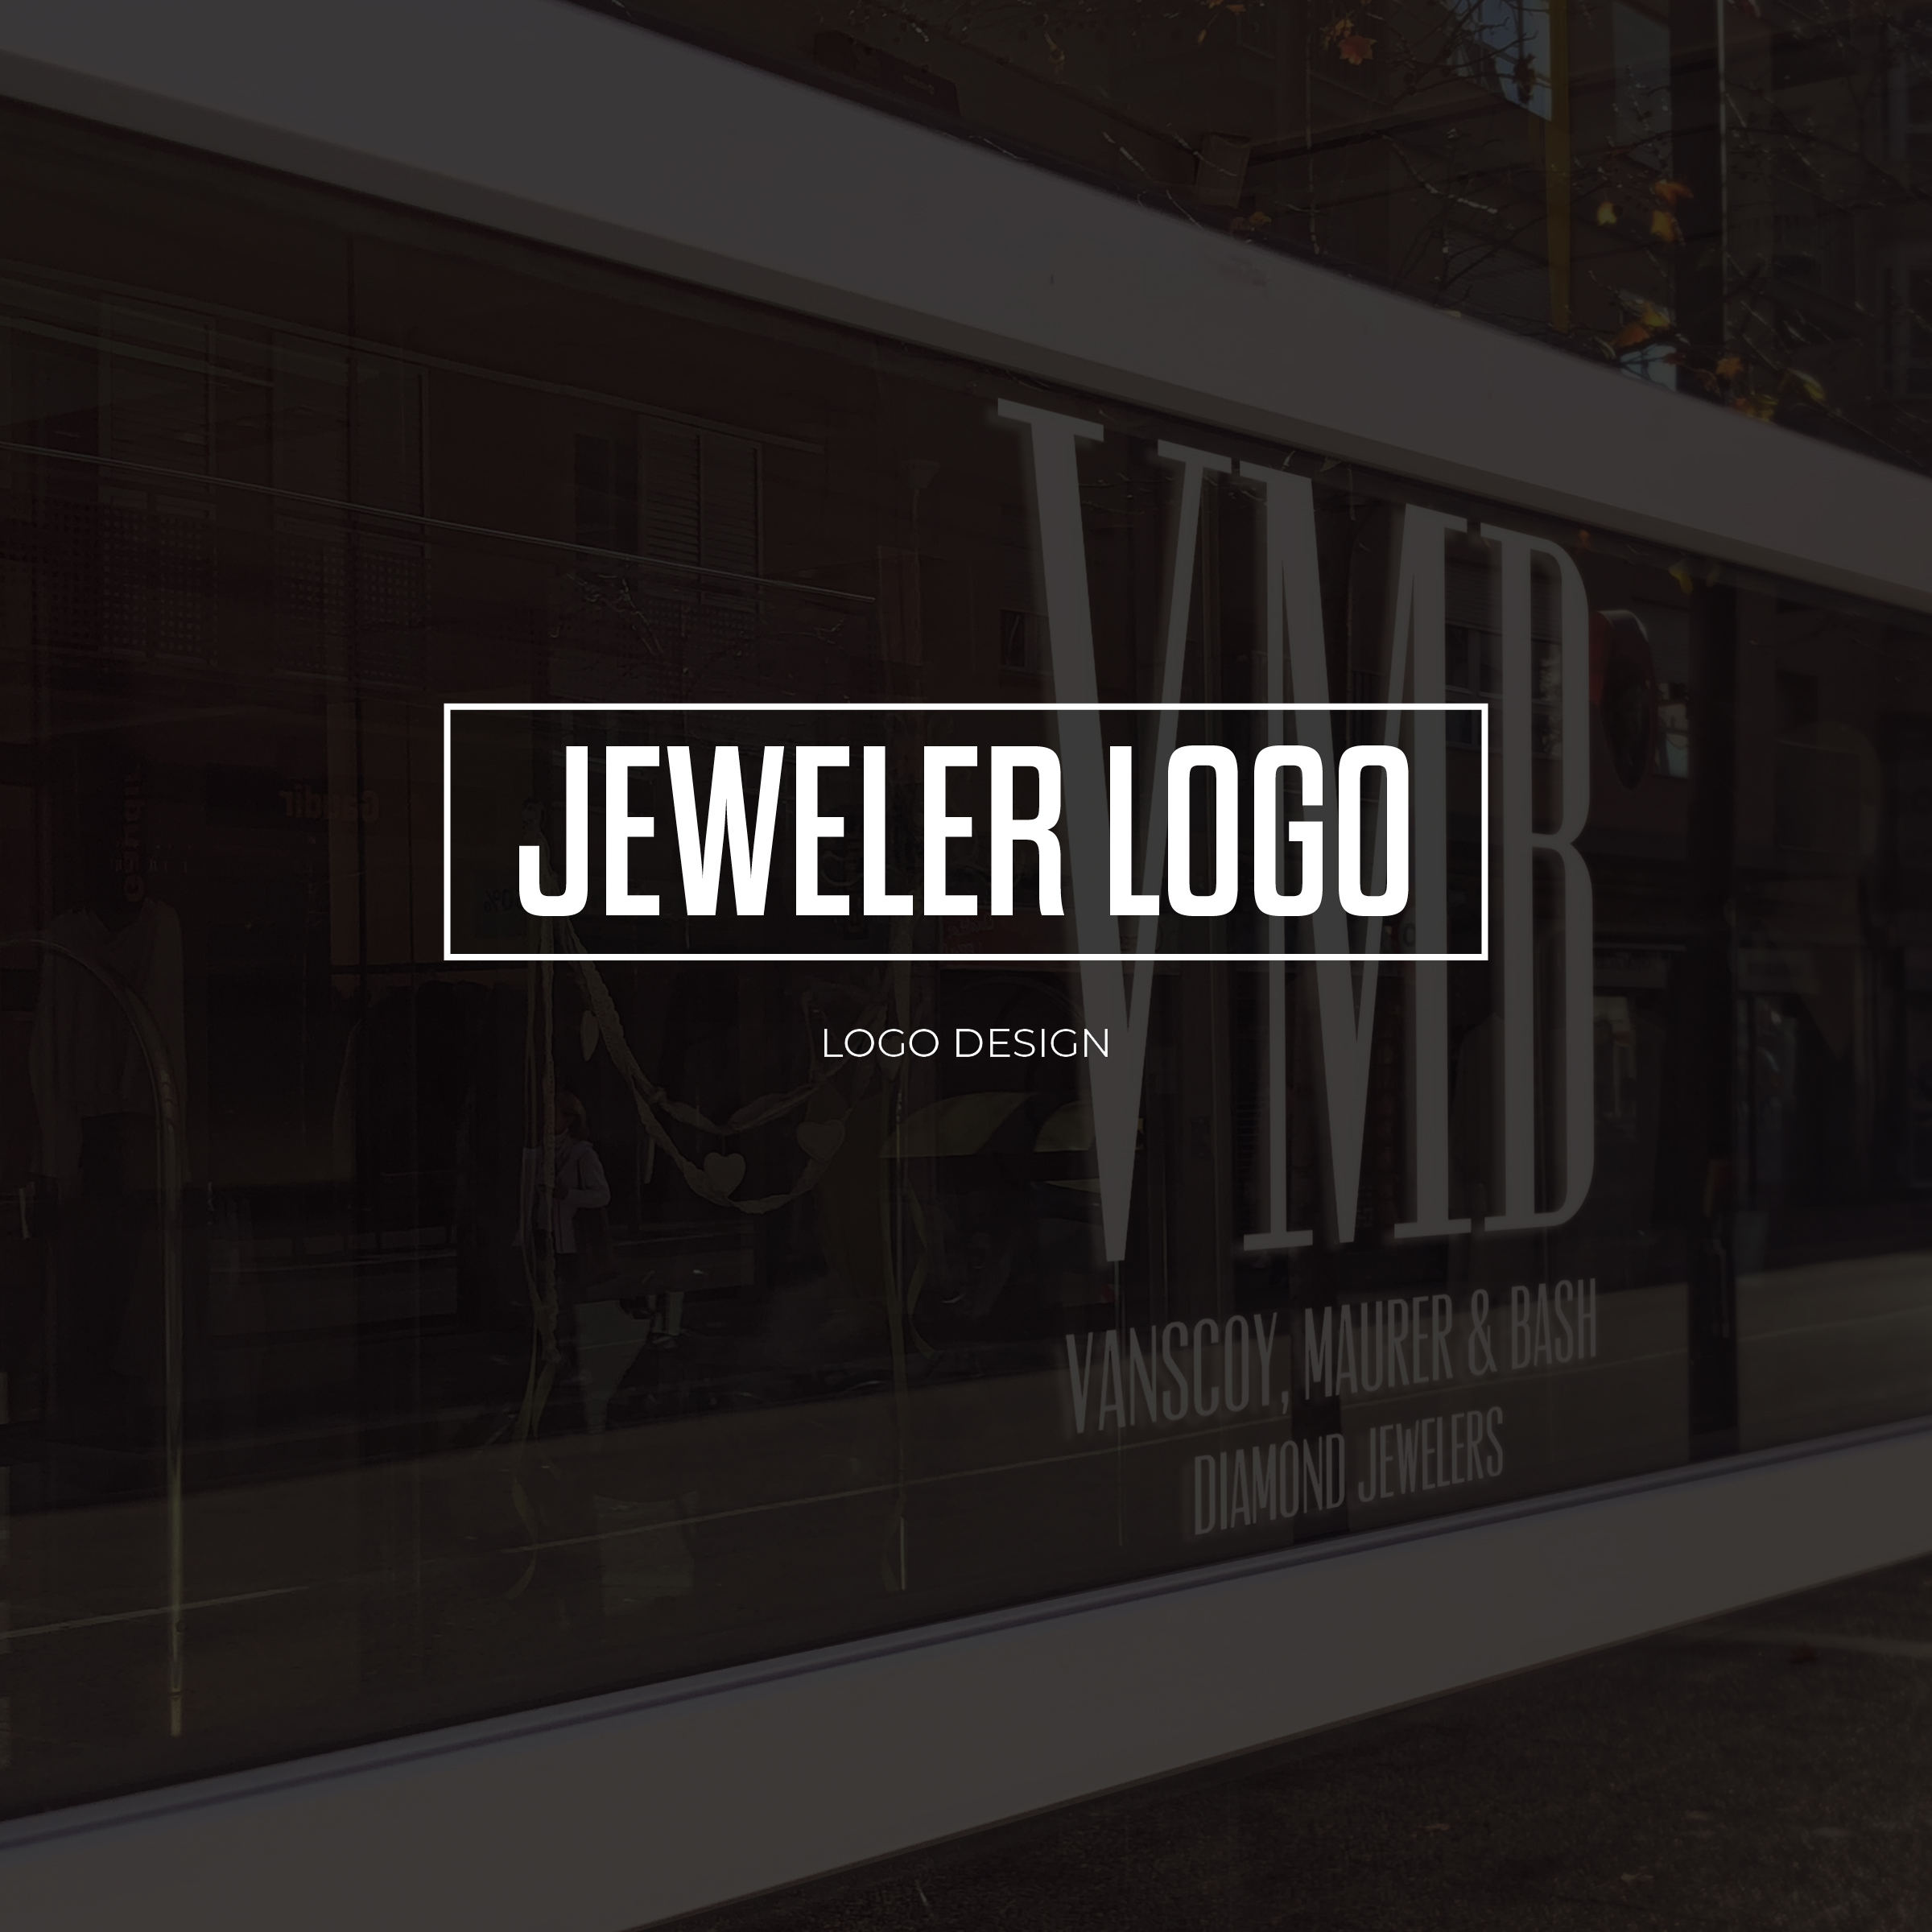 Vanscoy, Maurer & Bash Diamond Jewelers Rebranding